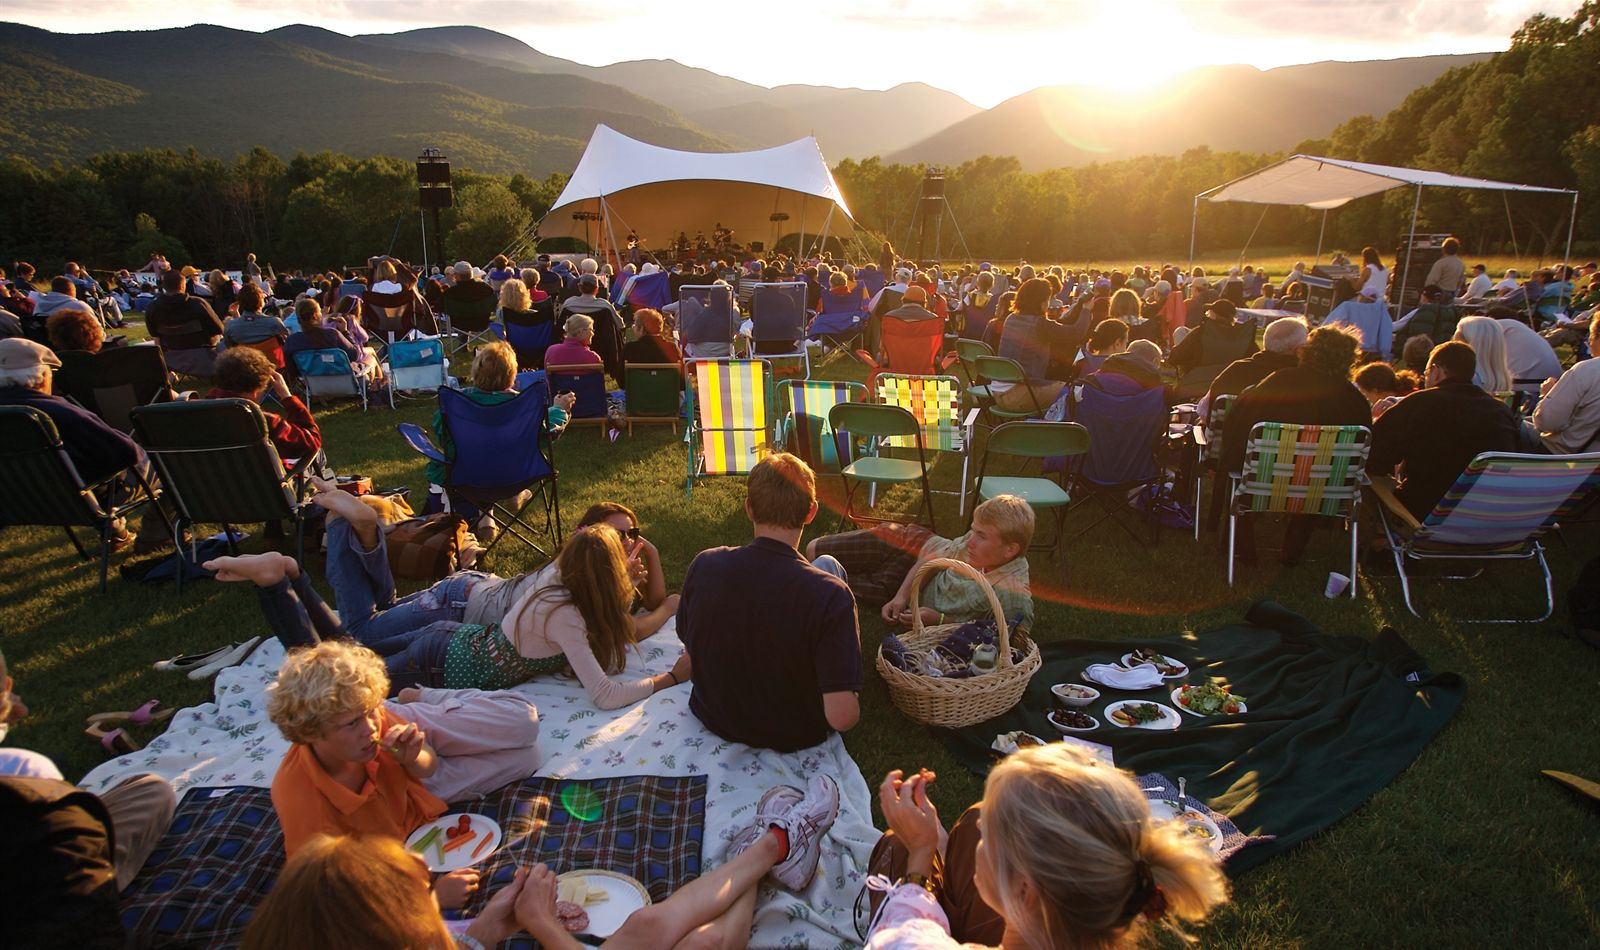 Concert in the Meadow at Trapp Family Lodge